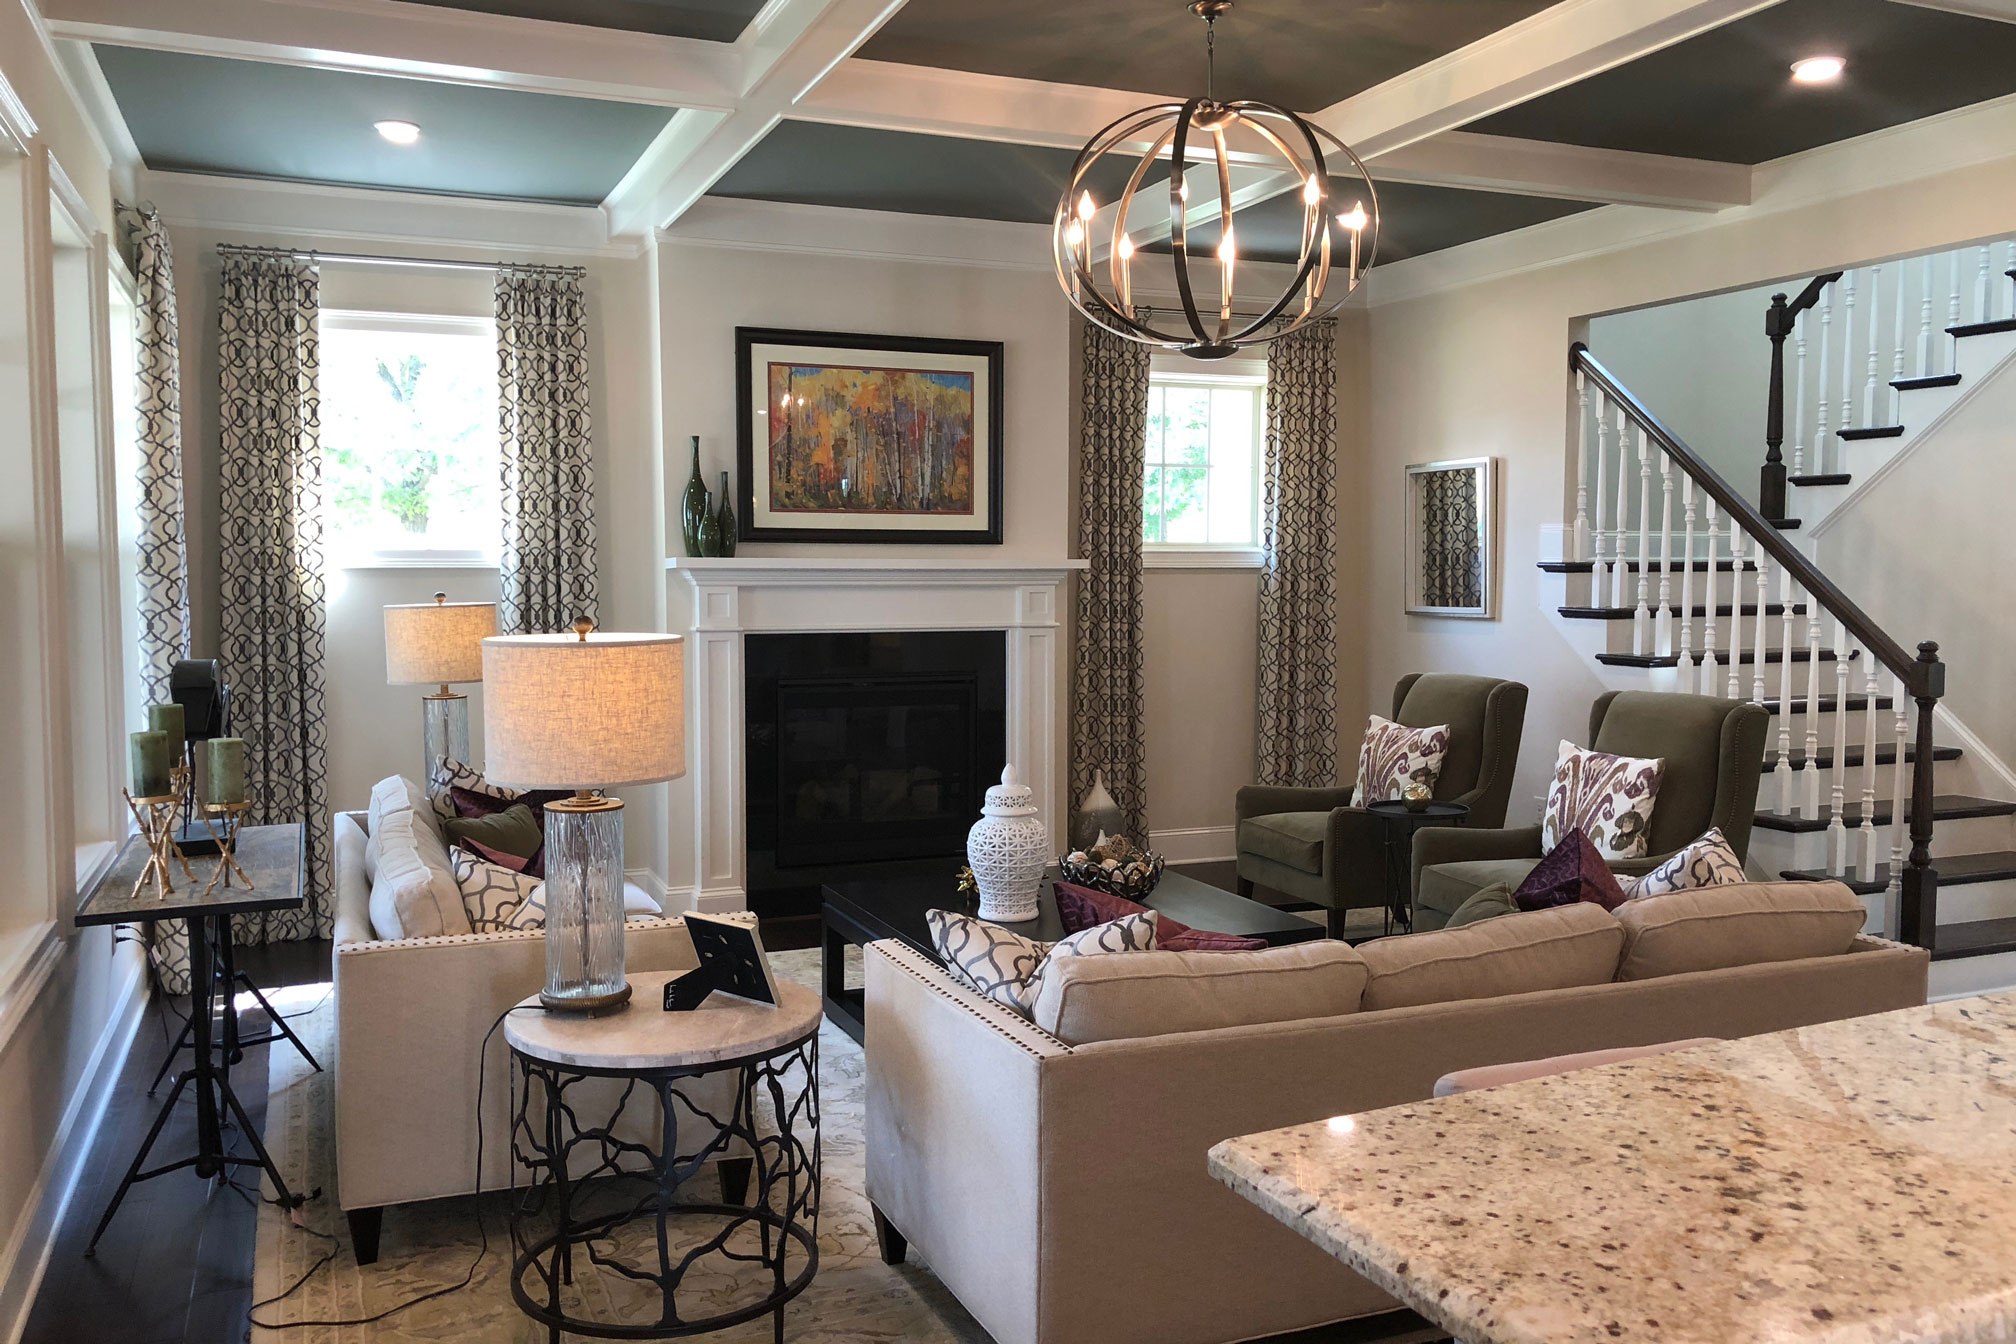 Parade Of Home Winner Decorum Staging Redesign Home Staging For Raleigh Cary Apex And Area